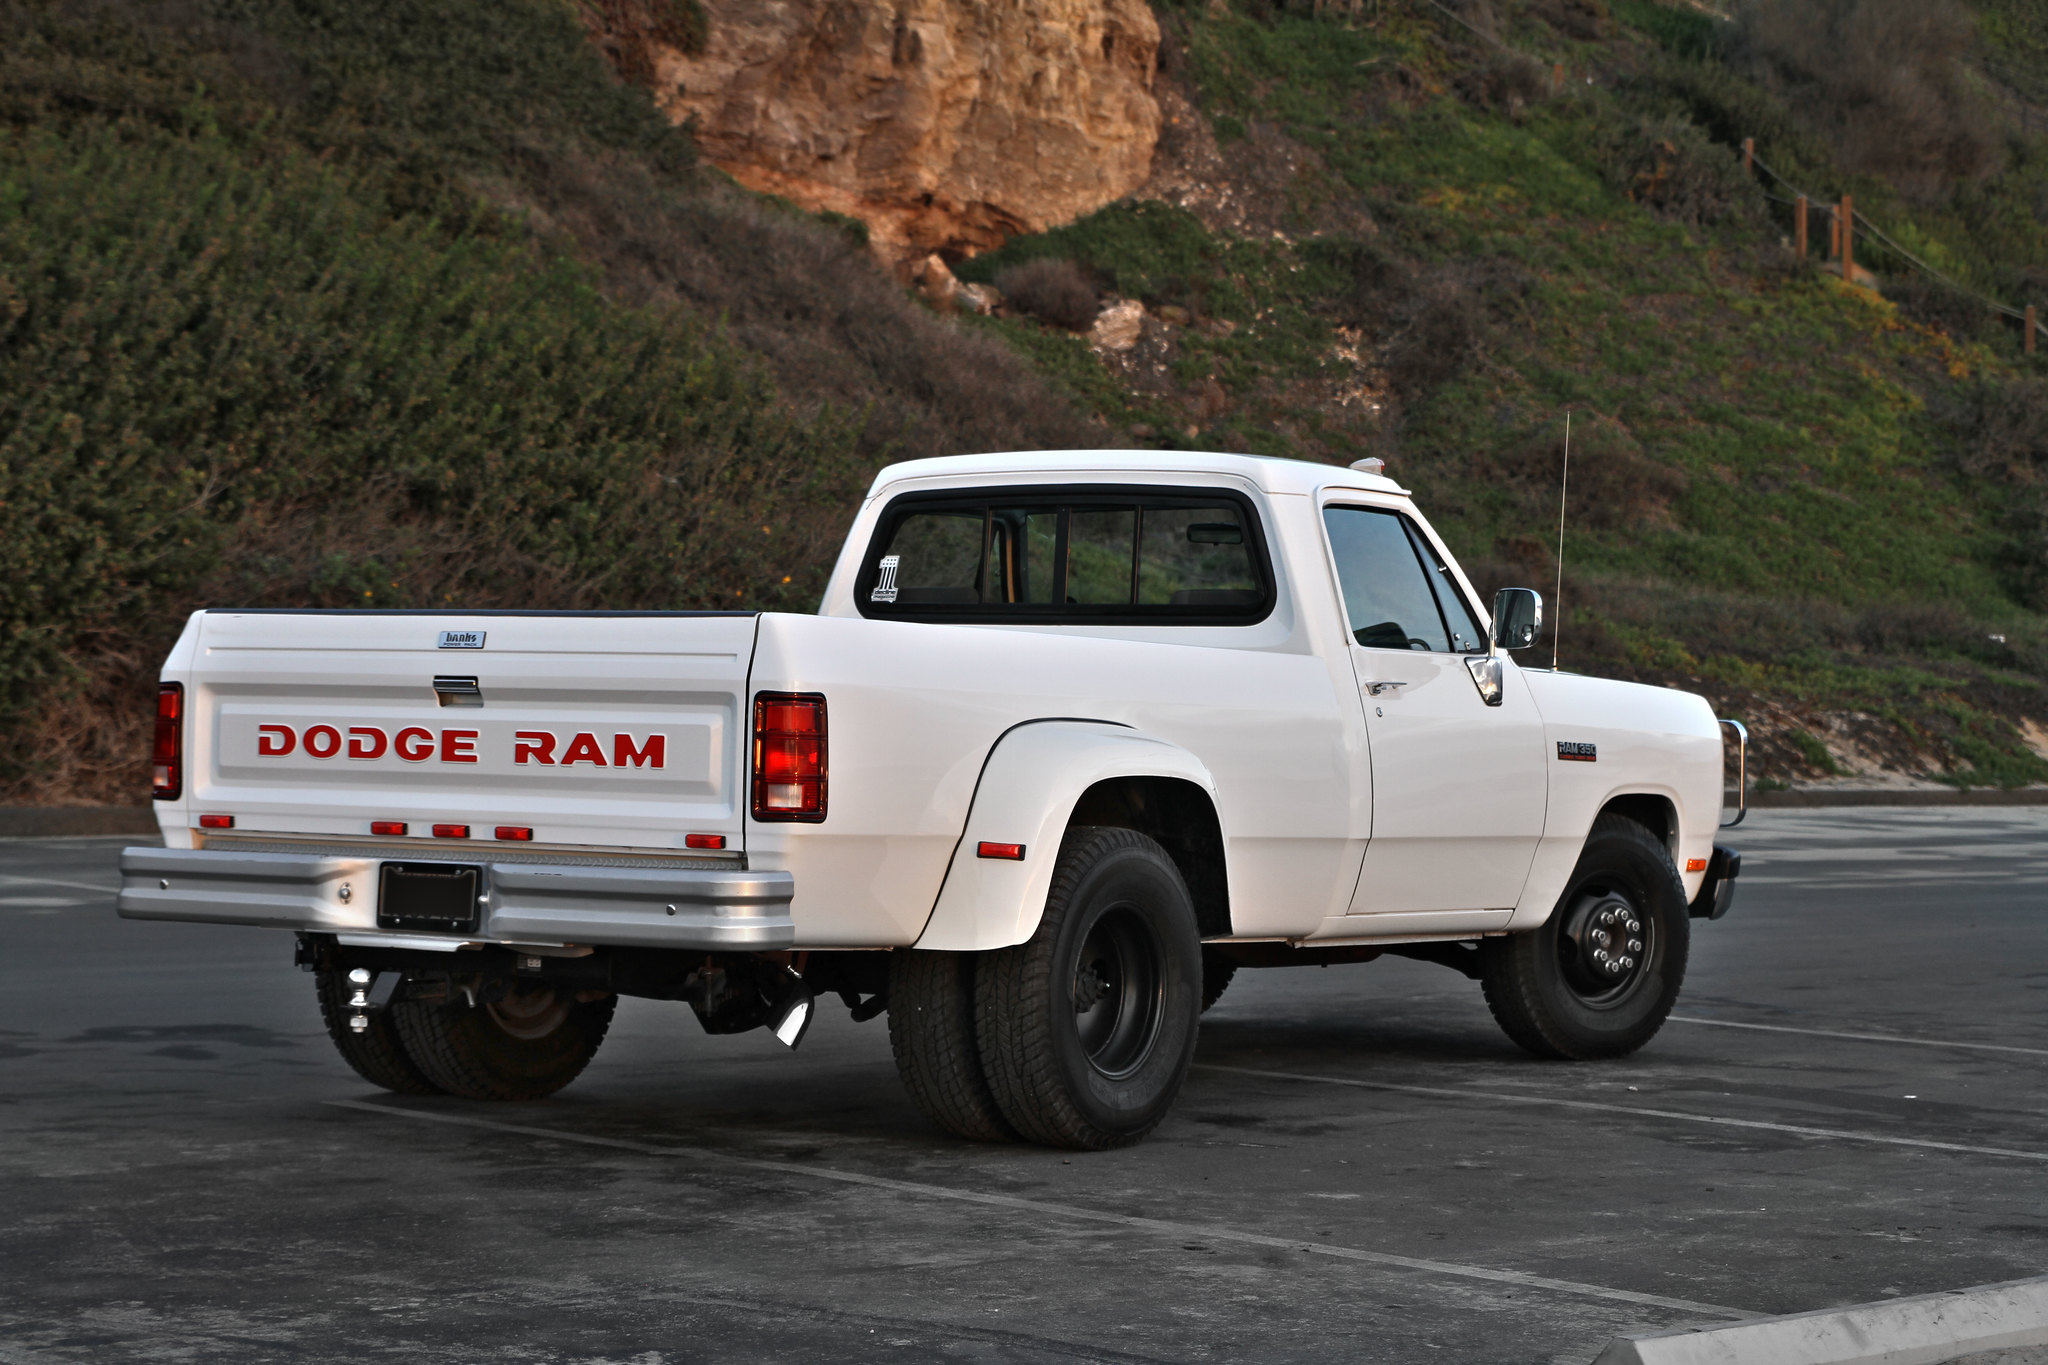 1989 Dodge D350 don t expect anything exciting here Builds and